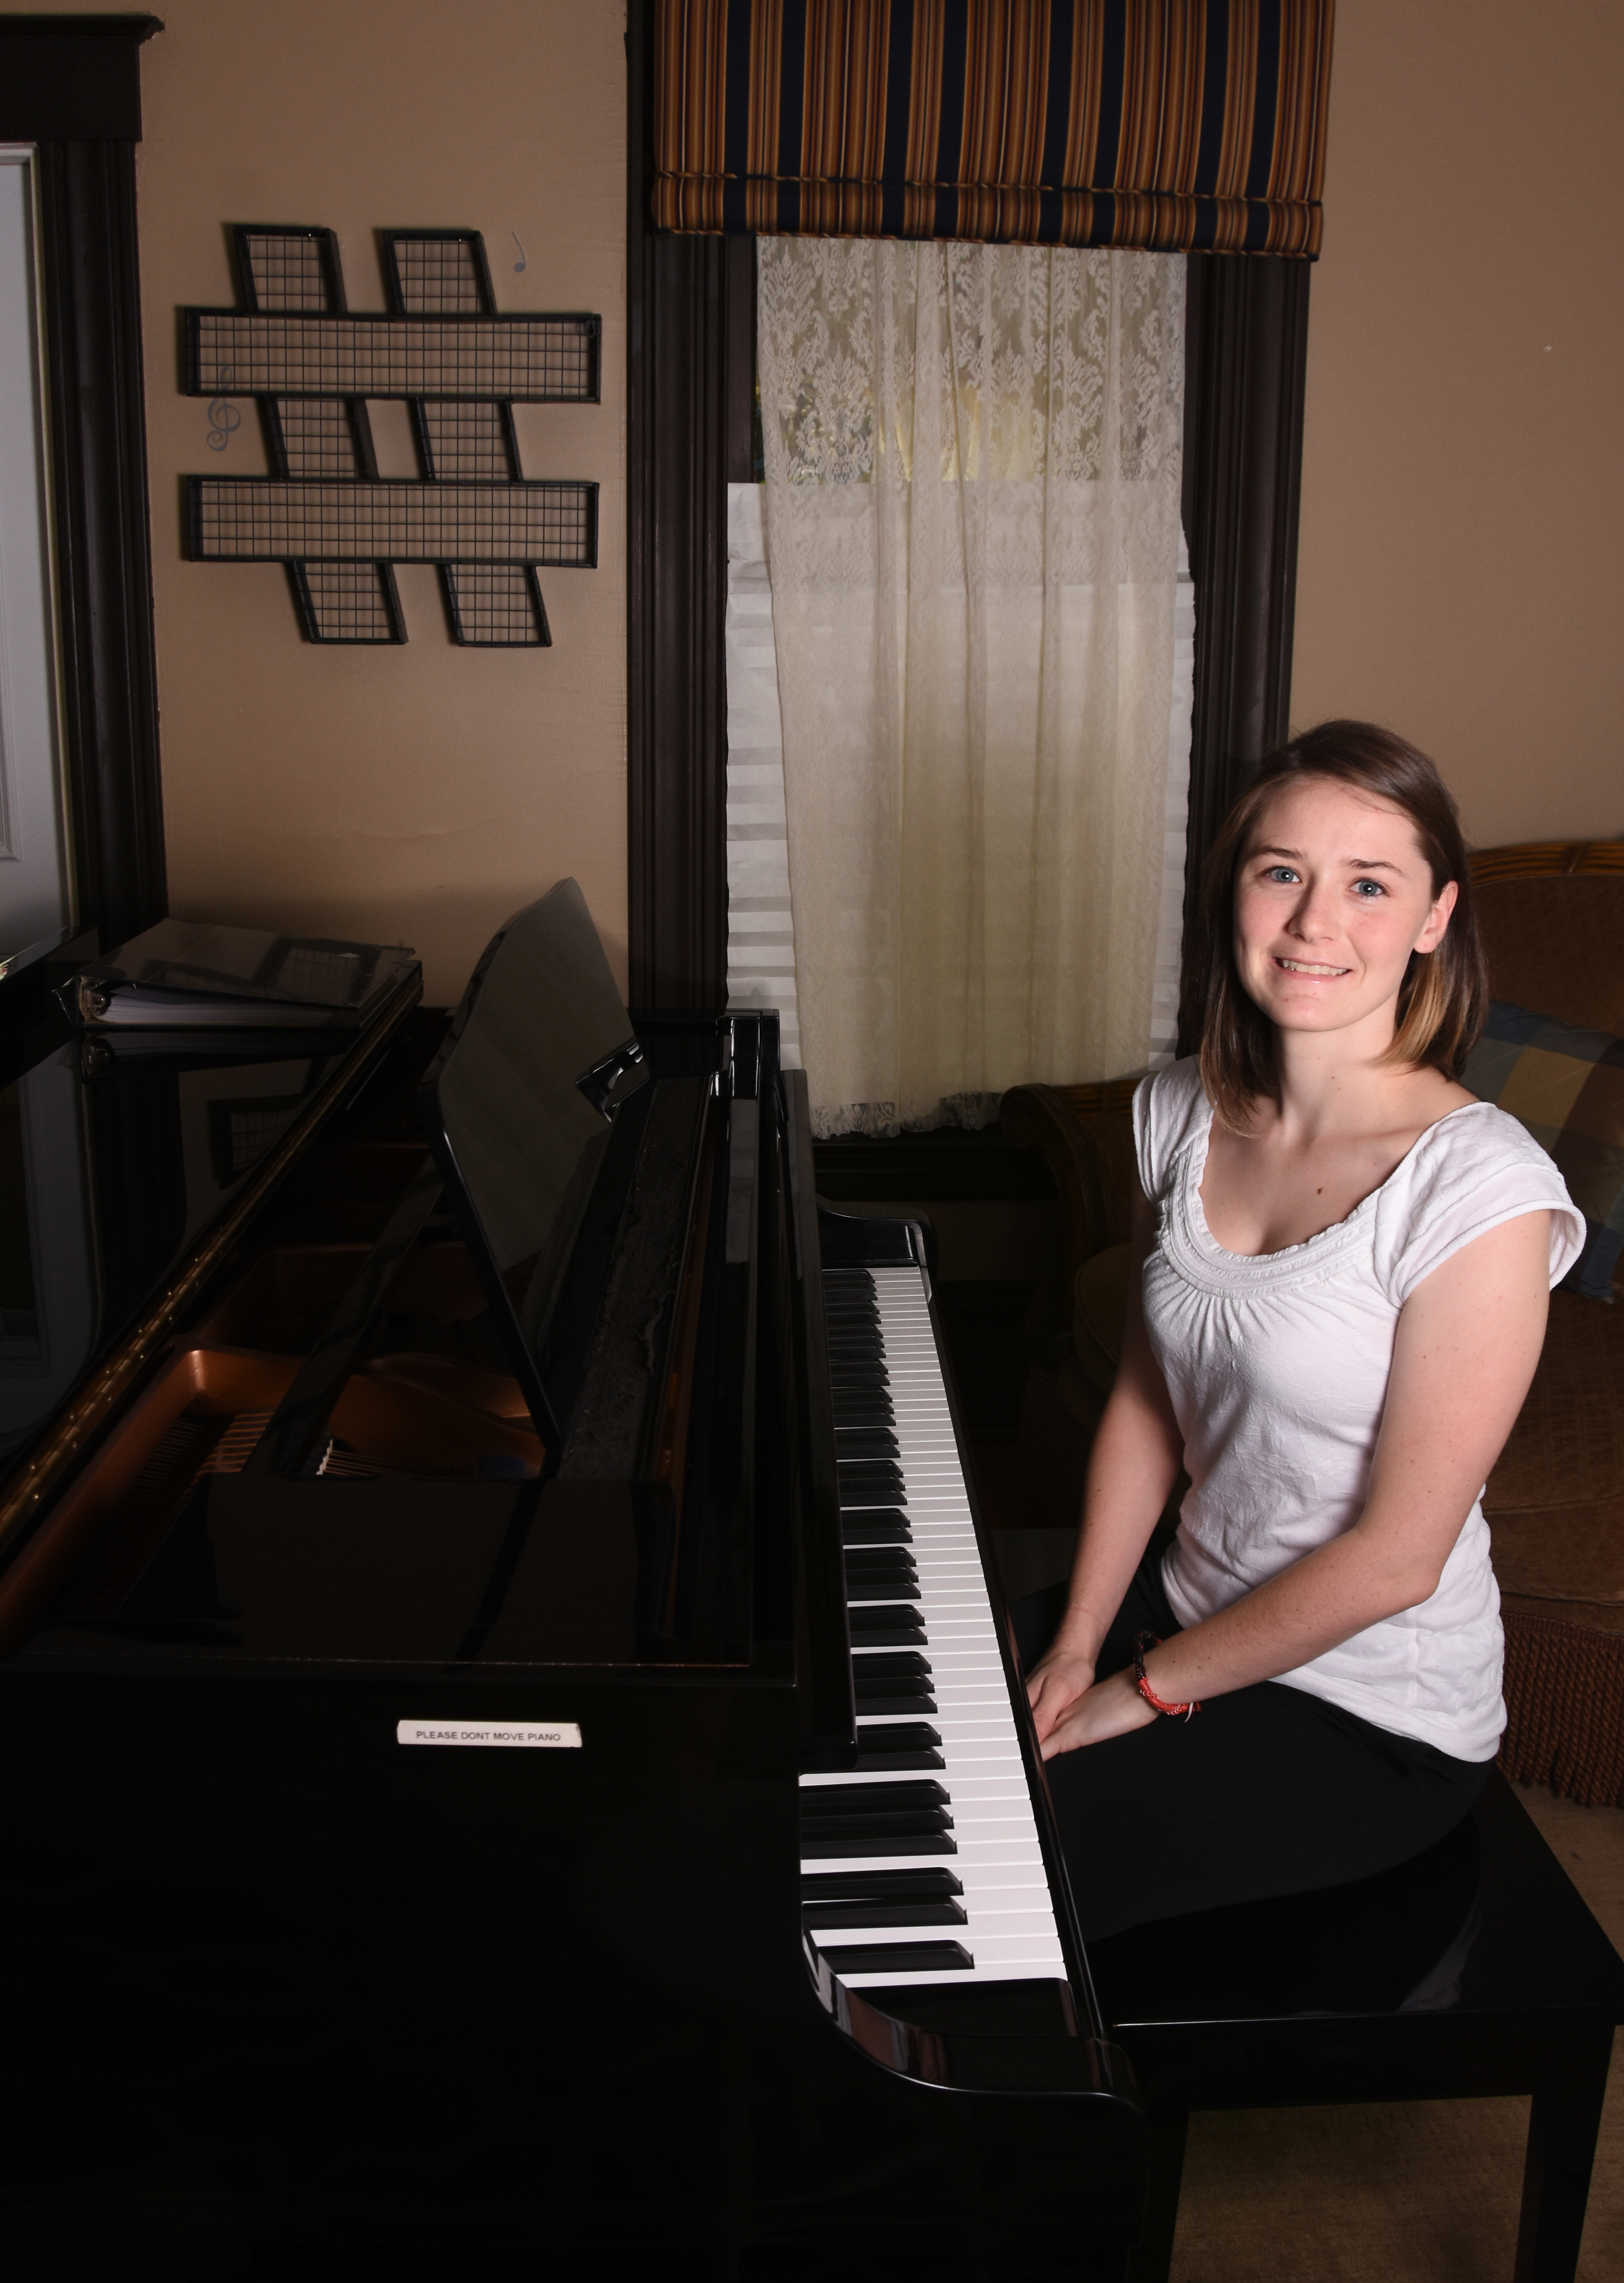 Katie is a Piano Teacher Intern with B Sharp School of Music.